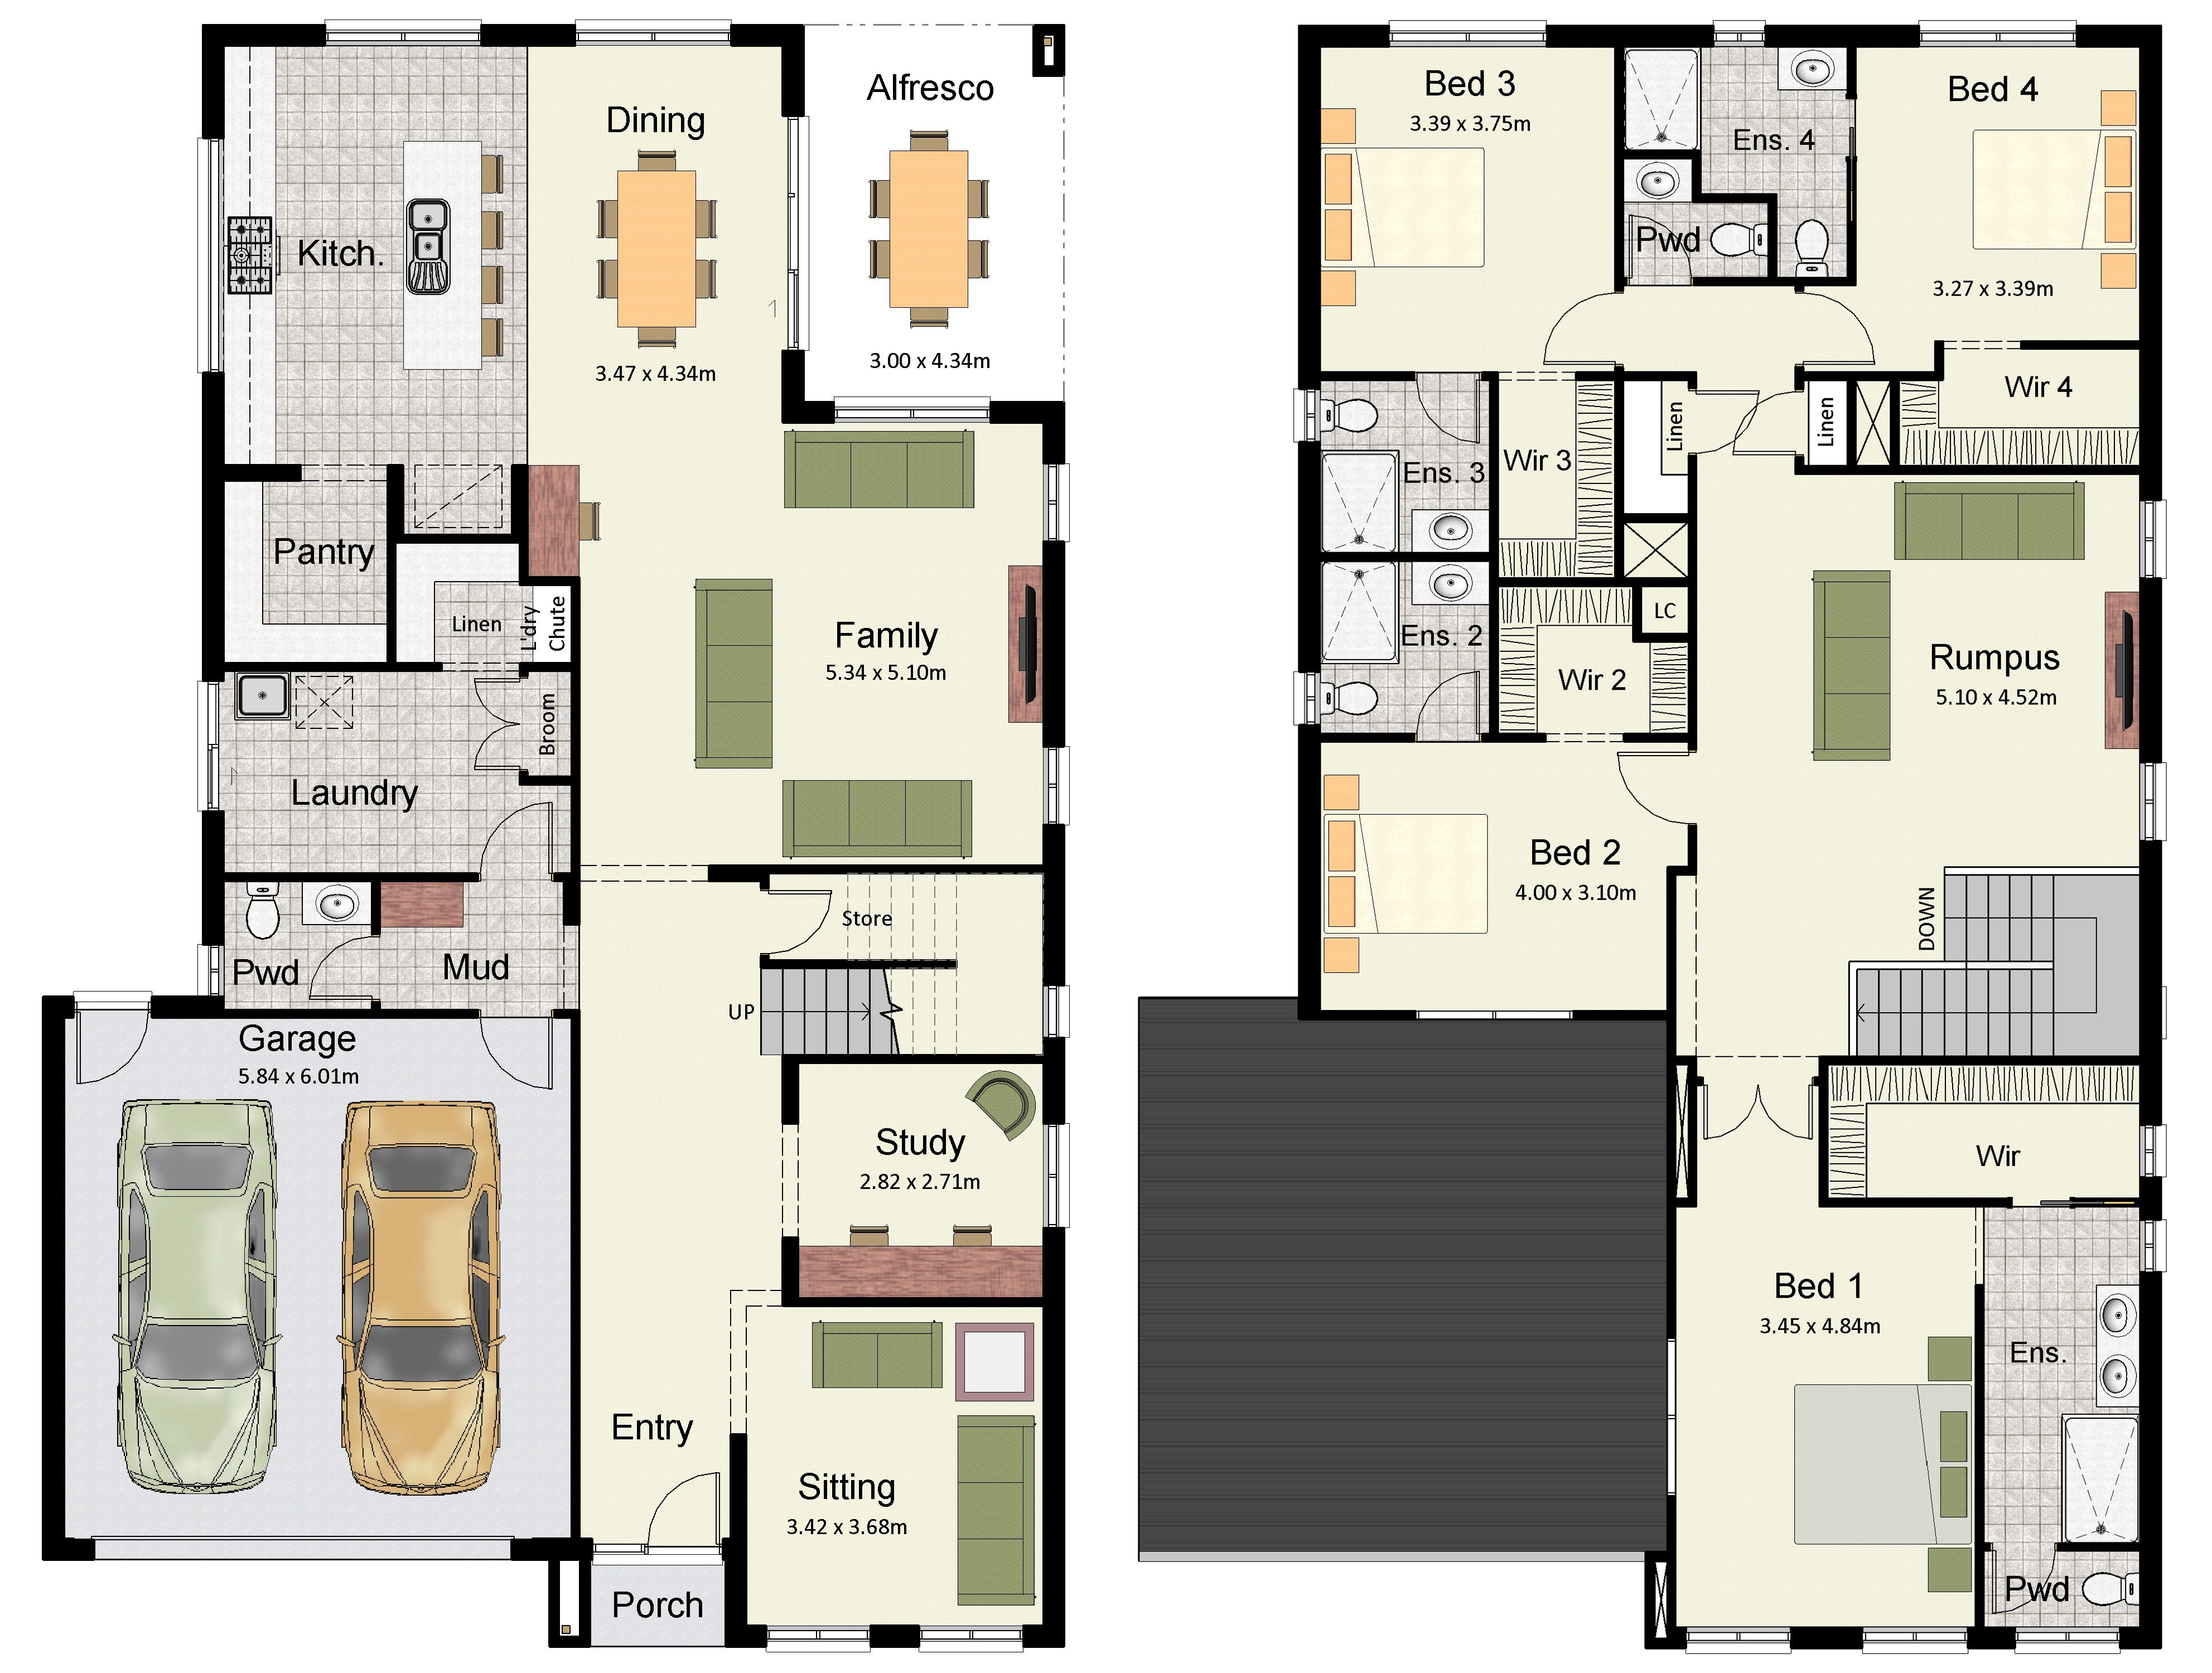 300 Sqm House Plans | 250-300 Sqm Floor Plans and Pegs | Pinterest ...